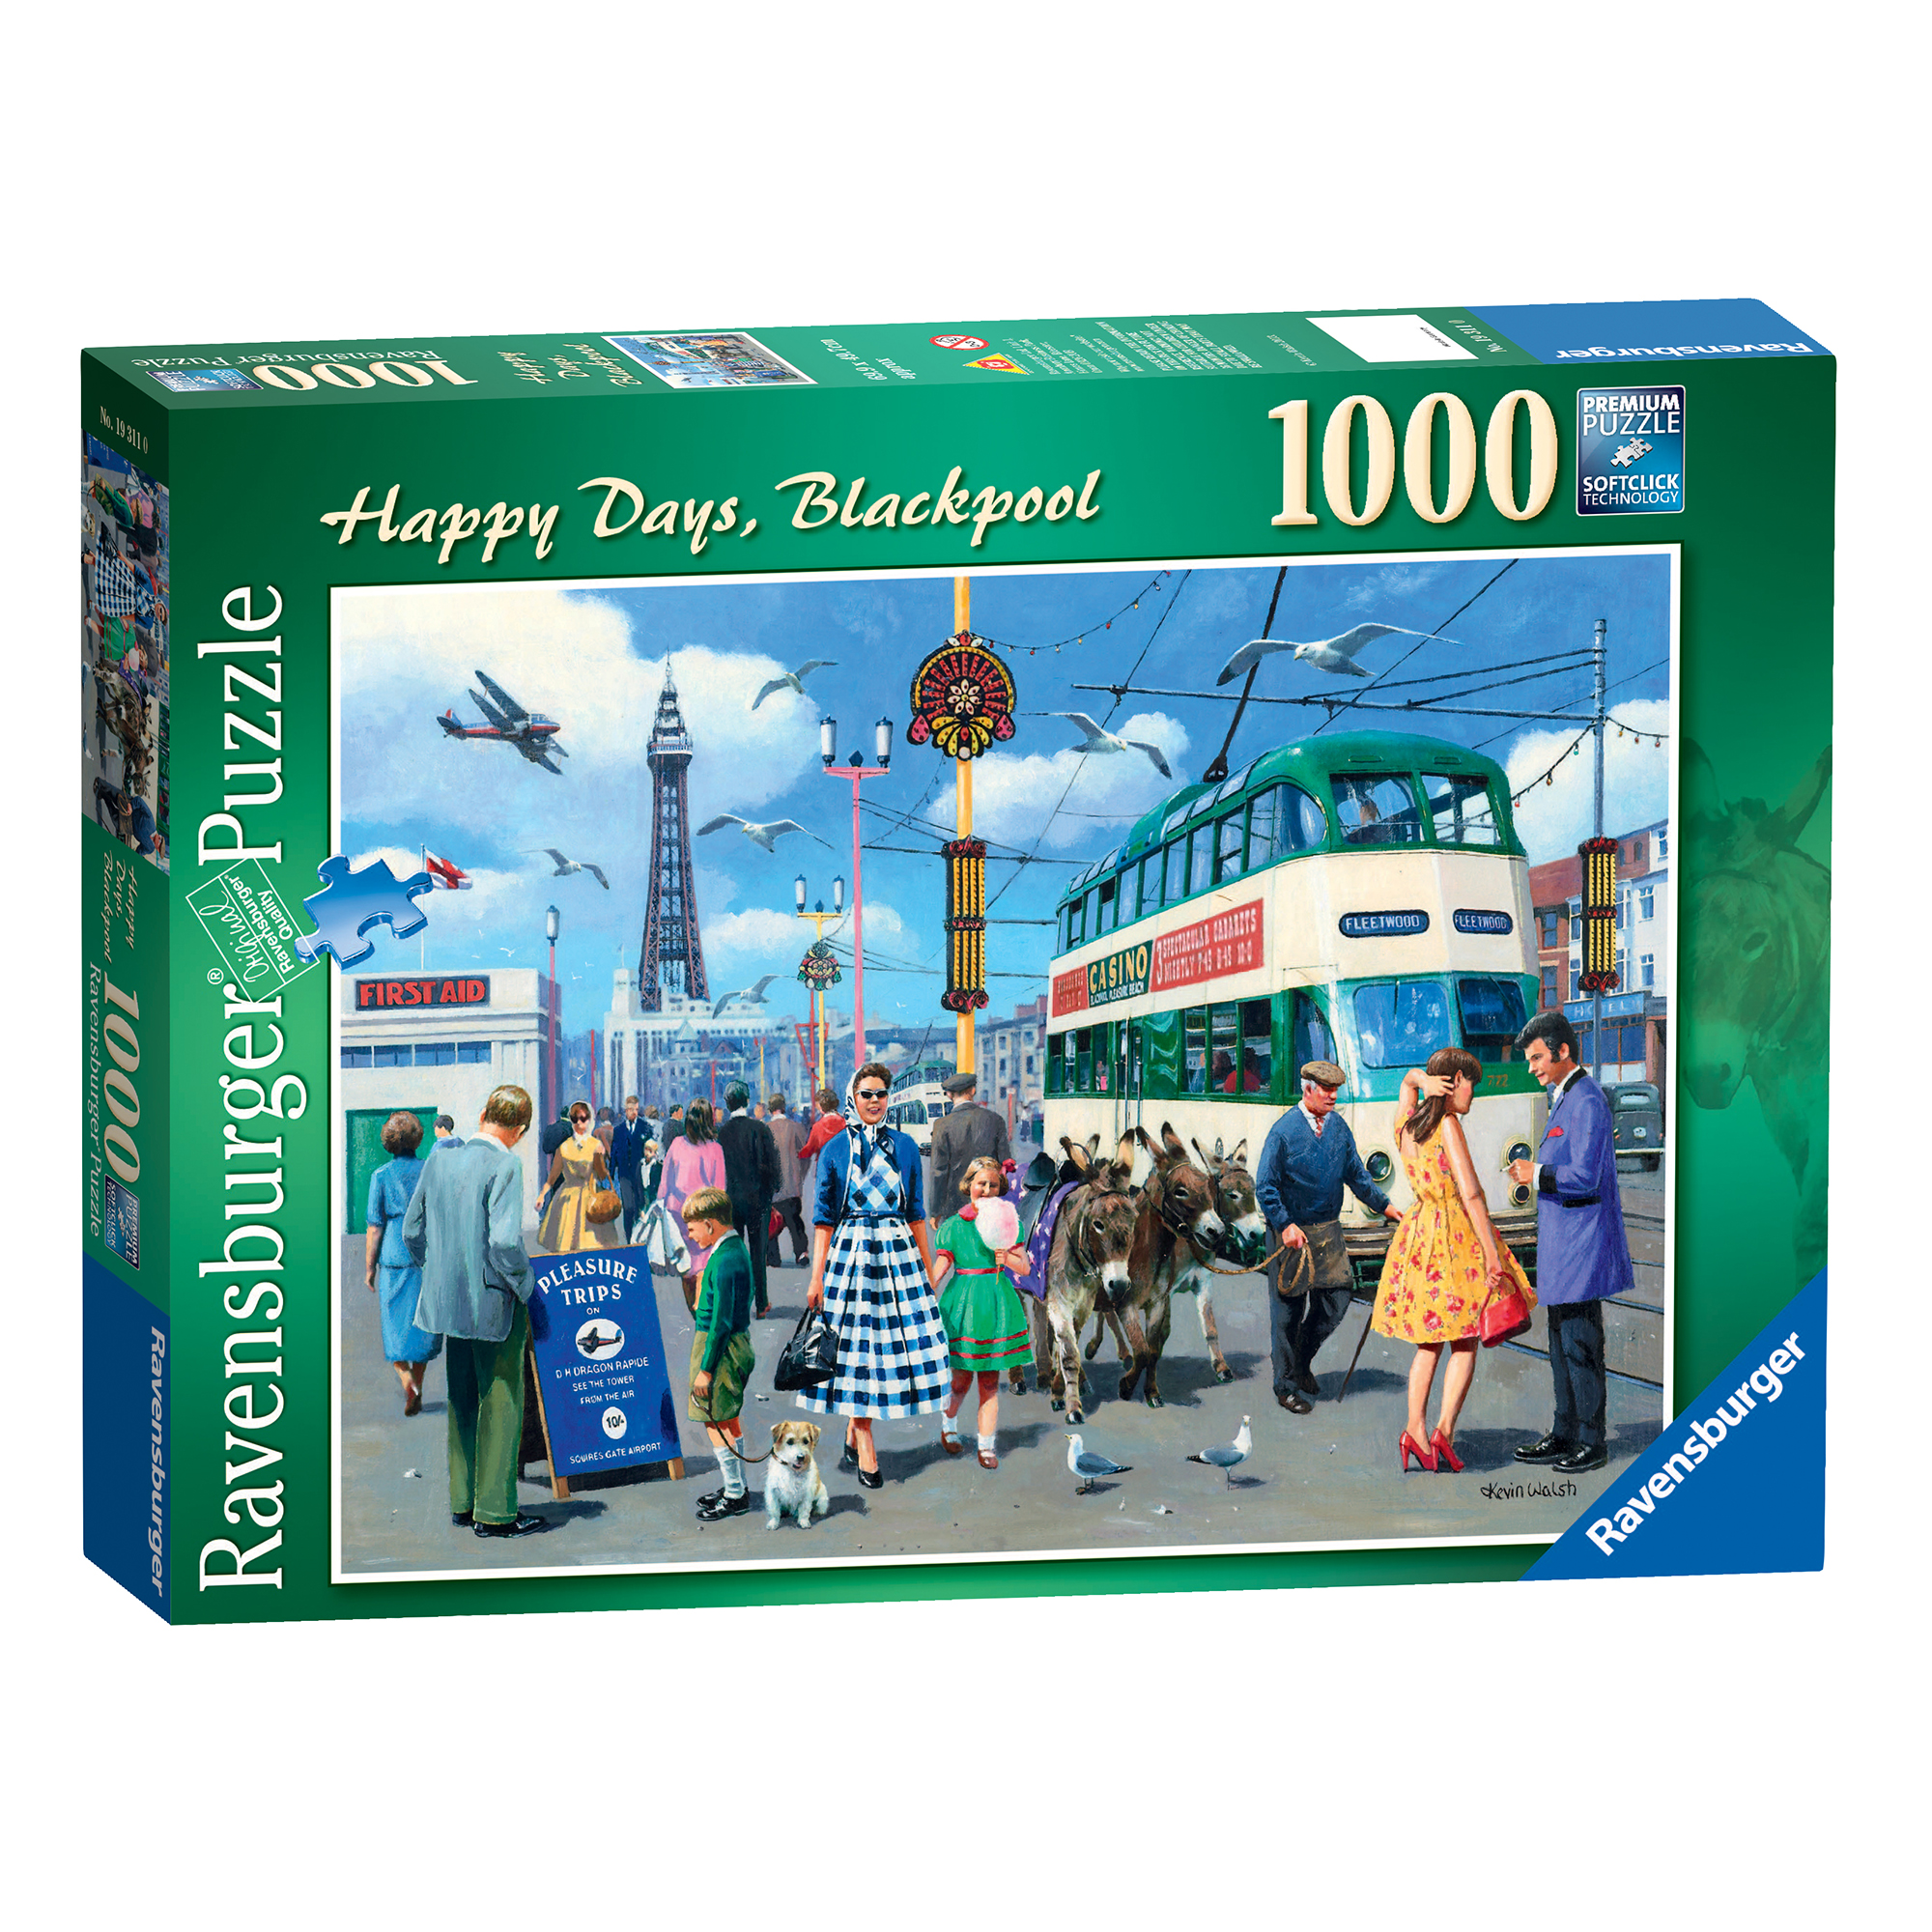 Ravensburger Happy Days Blackpool 1000 Piece Puzzle